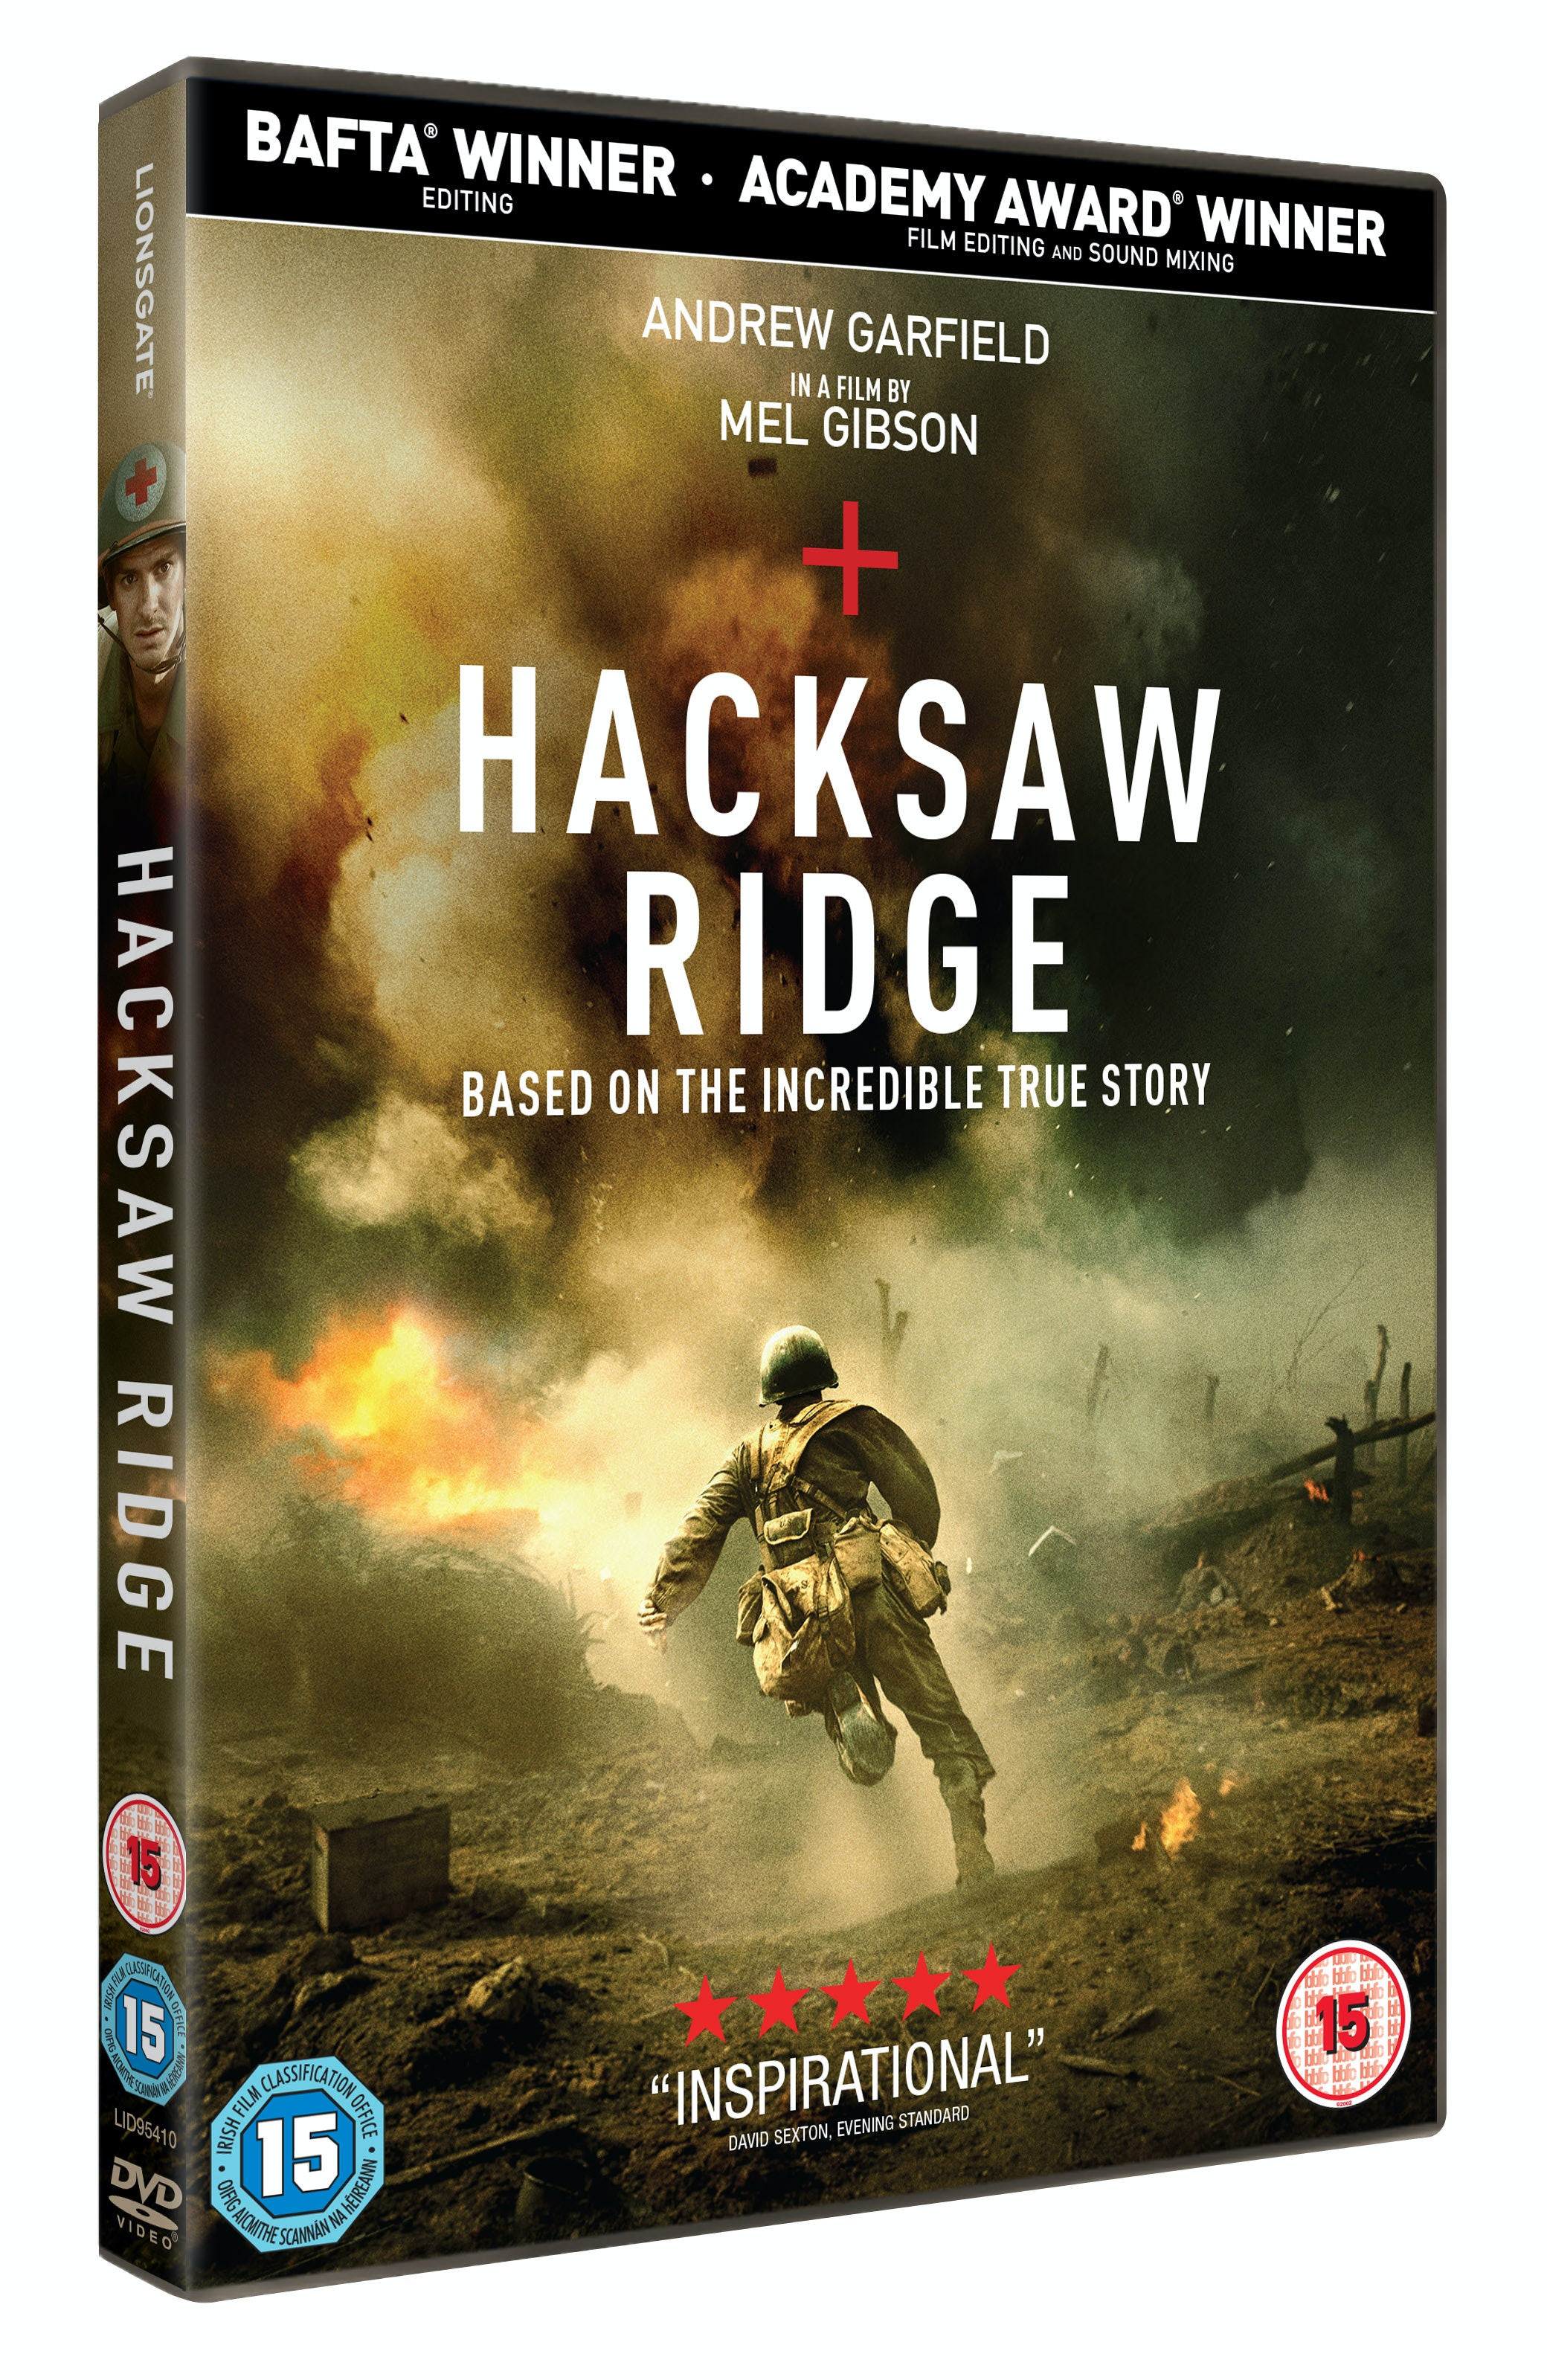 Hacksaw Ridge sweepstakes